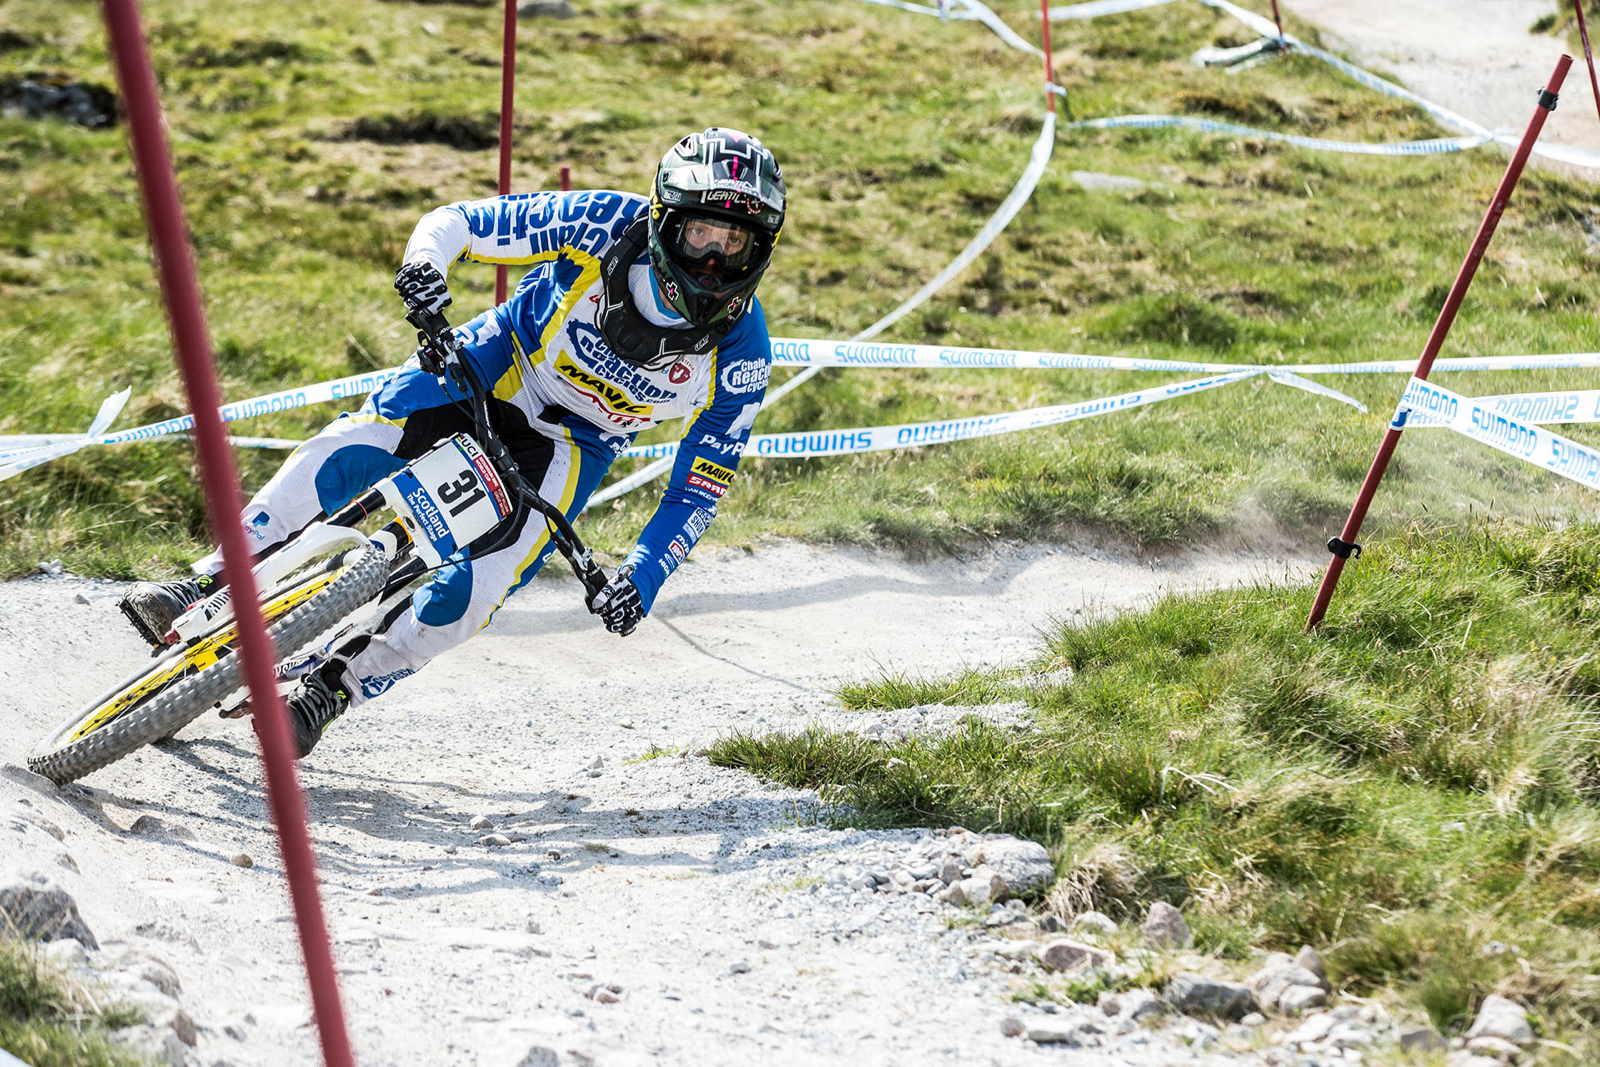 Team Chain Reaction Cycles Paypal - Fort William World Cup 2016. Photo credit Duncan Philpott